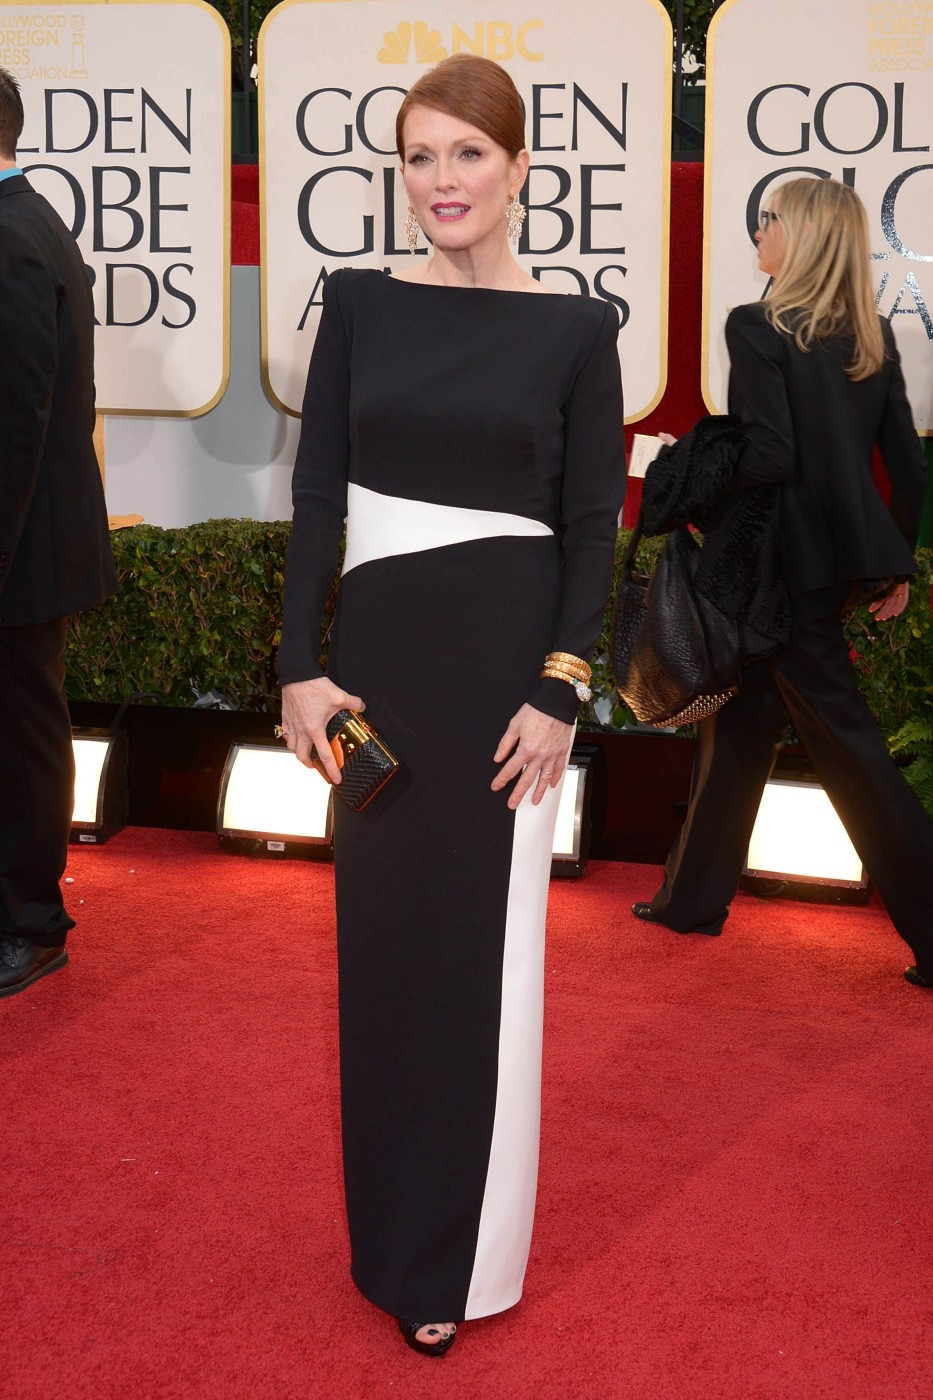 The 70th Annual Golden Globe Awards - Red Carpet